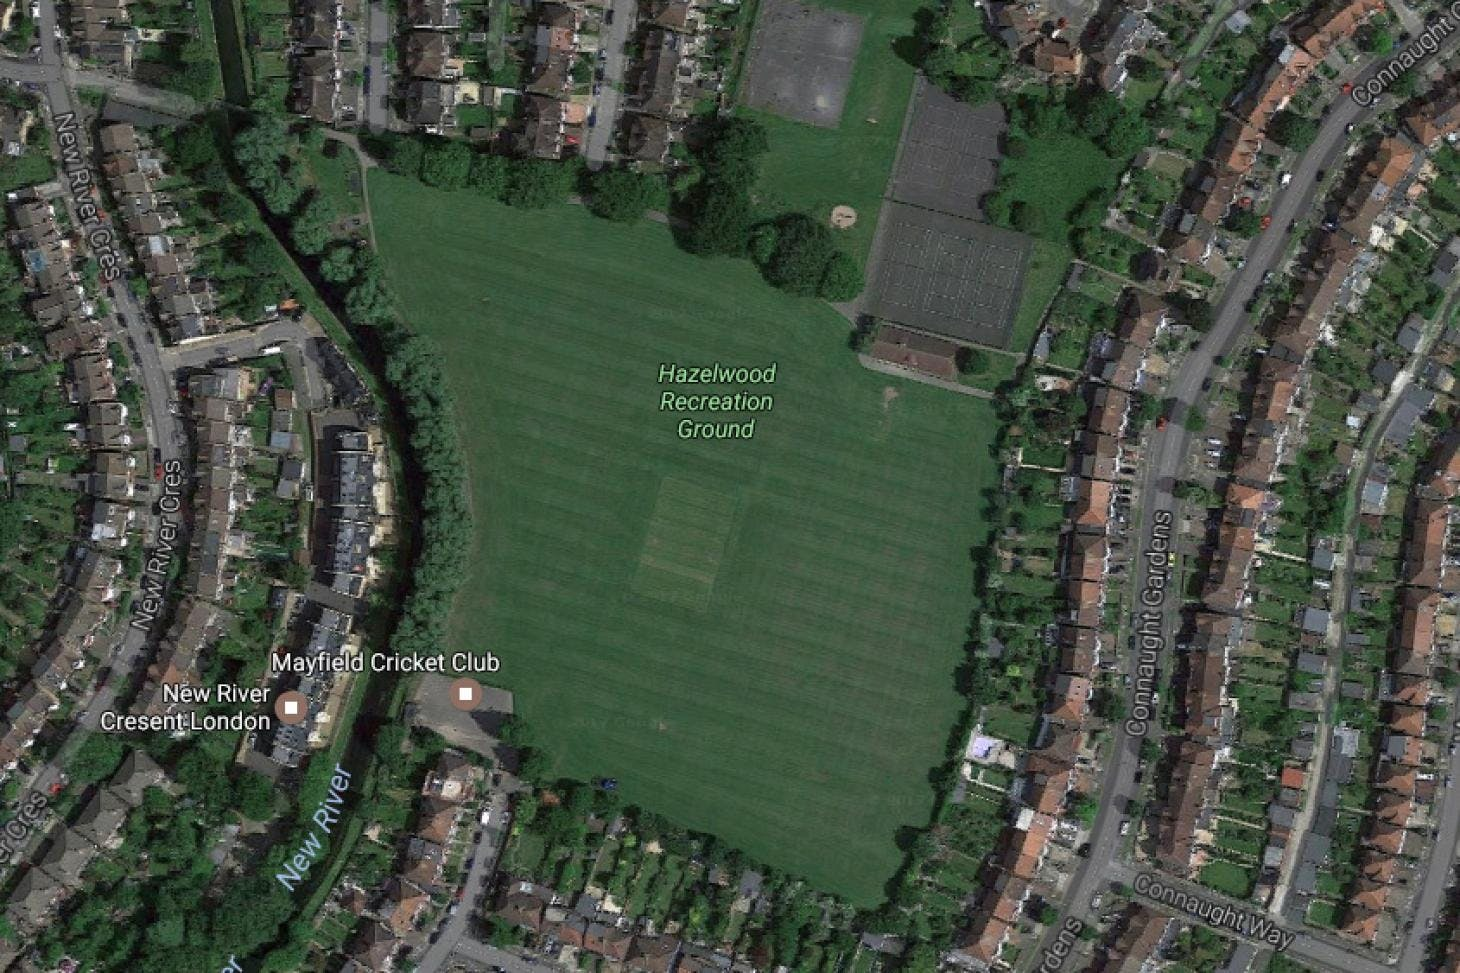 Hazelwood Recreation Ground Full size | Grass cricket facilities